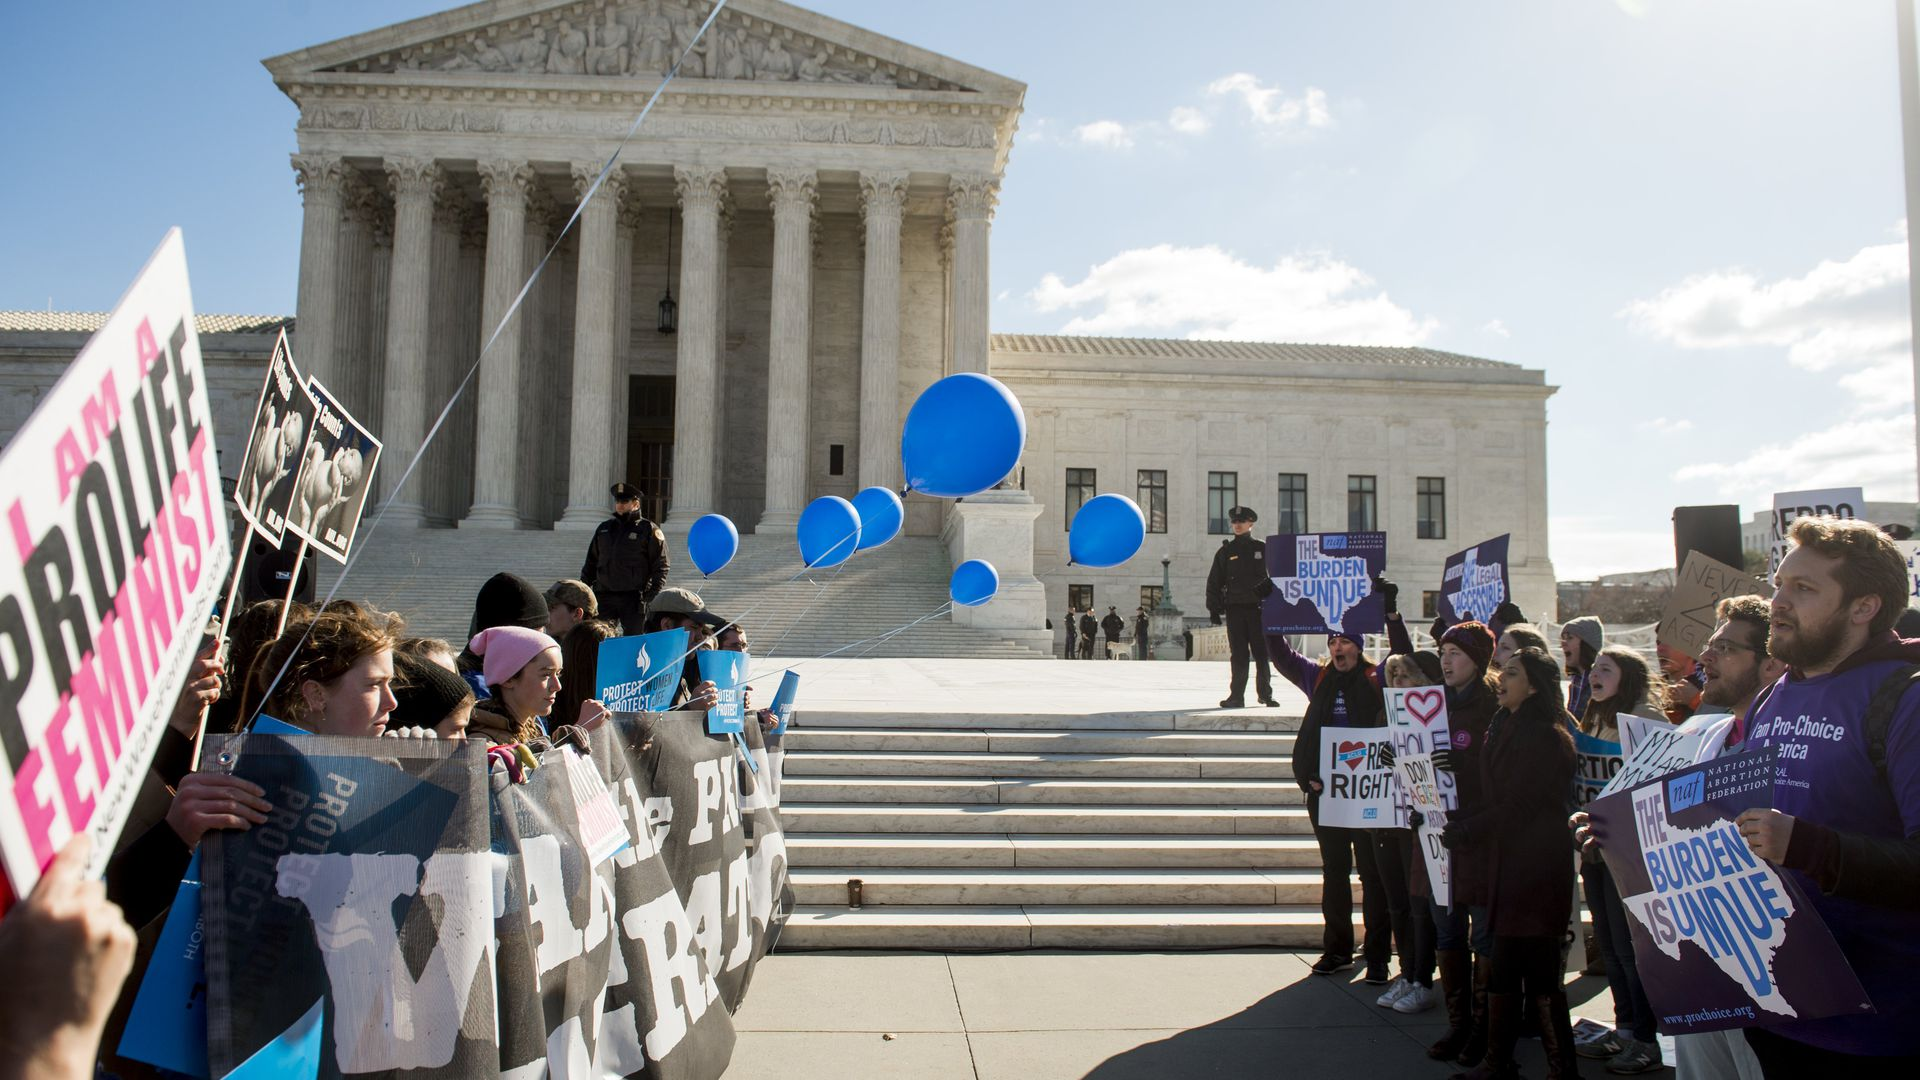 Supporters of legal access to abortion, as well as anti-abortion activists, rally outside the Supreme Court in Washington, DC.